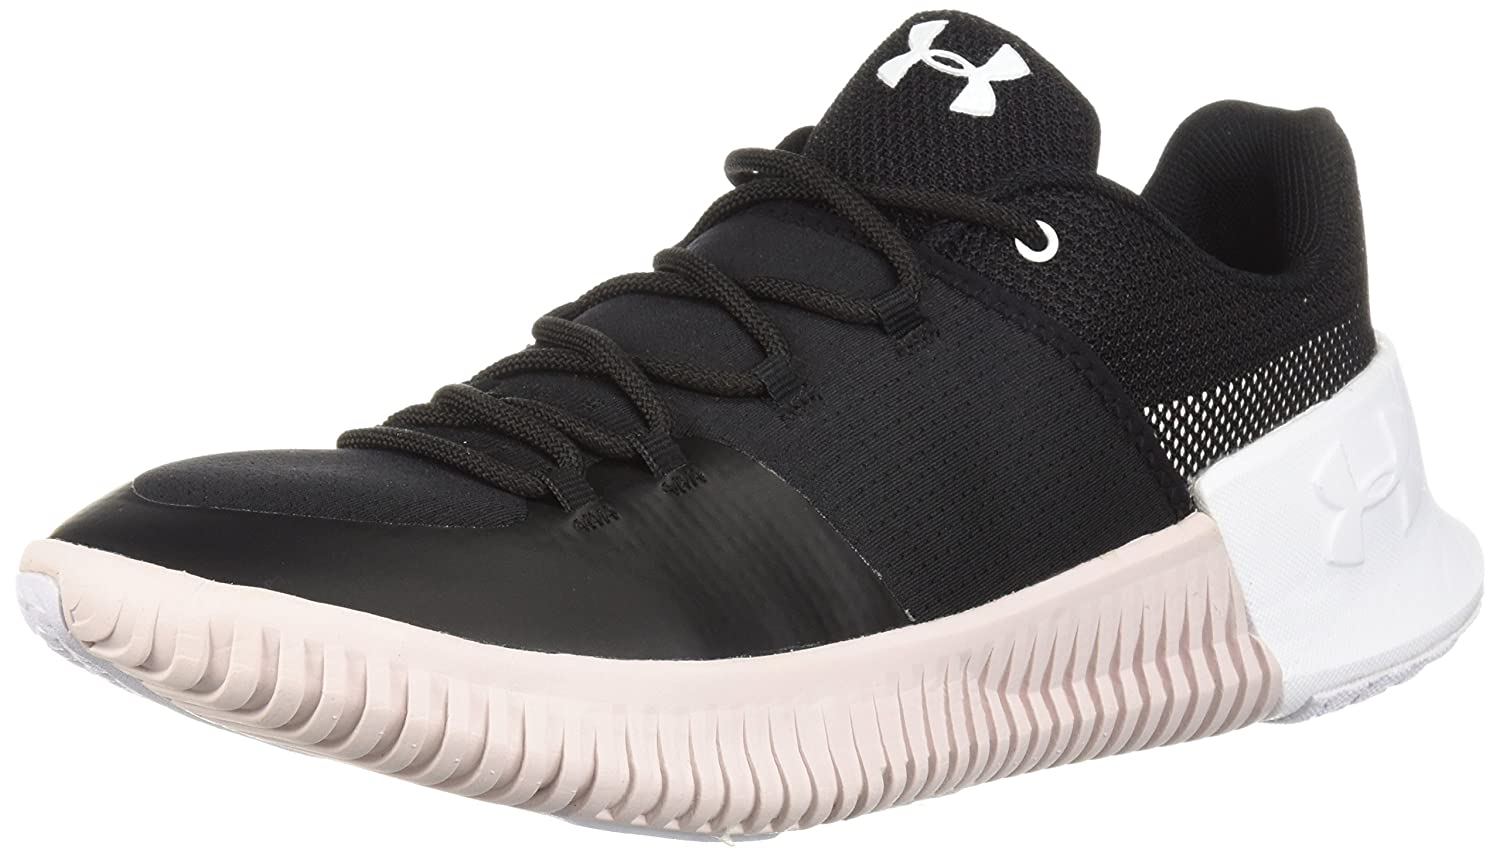 Under Armour Women's Ultimate Speed Sneaker B072LNJPRR 7.5 M US|Black (001)/French Gray